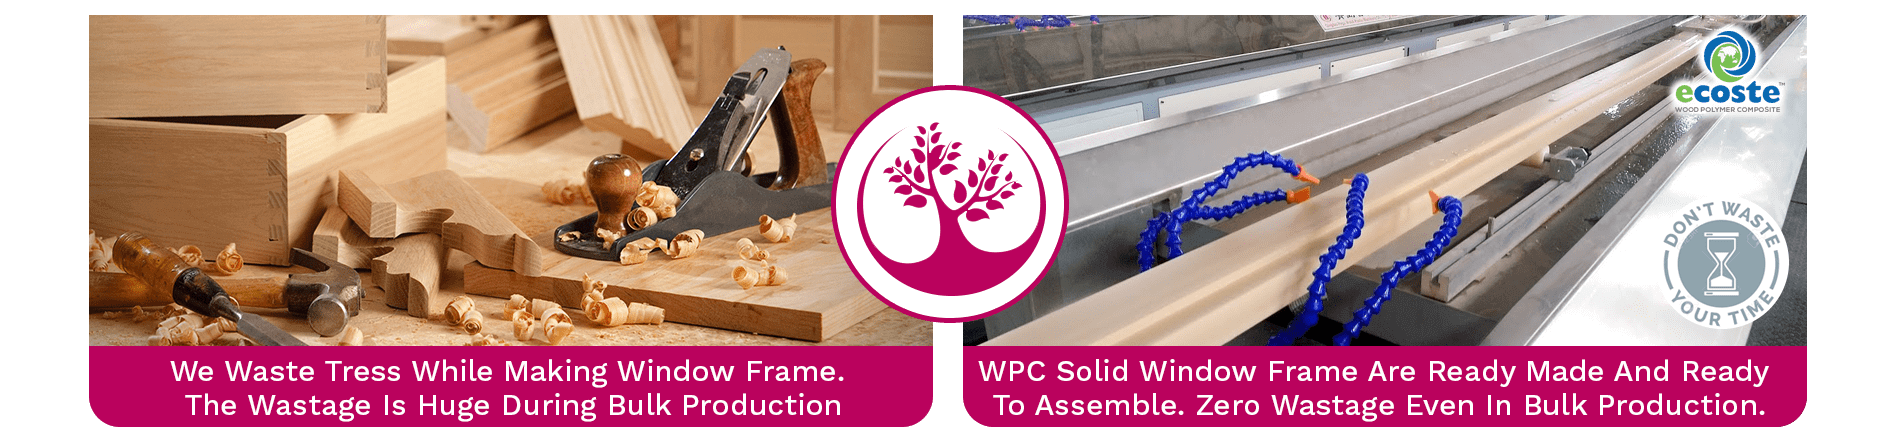 Wooden Window Frame & WPC Solid Window Frame